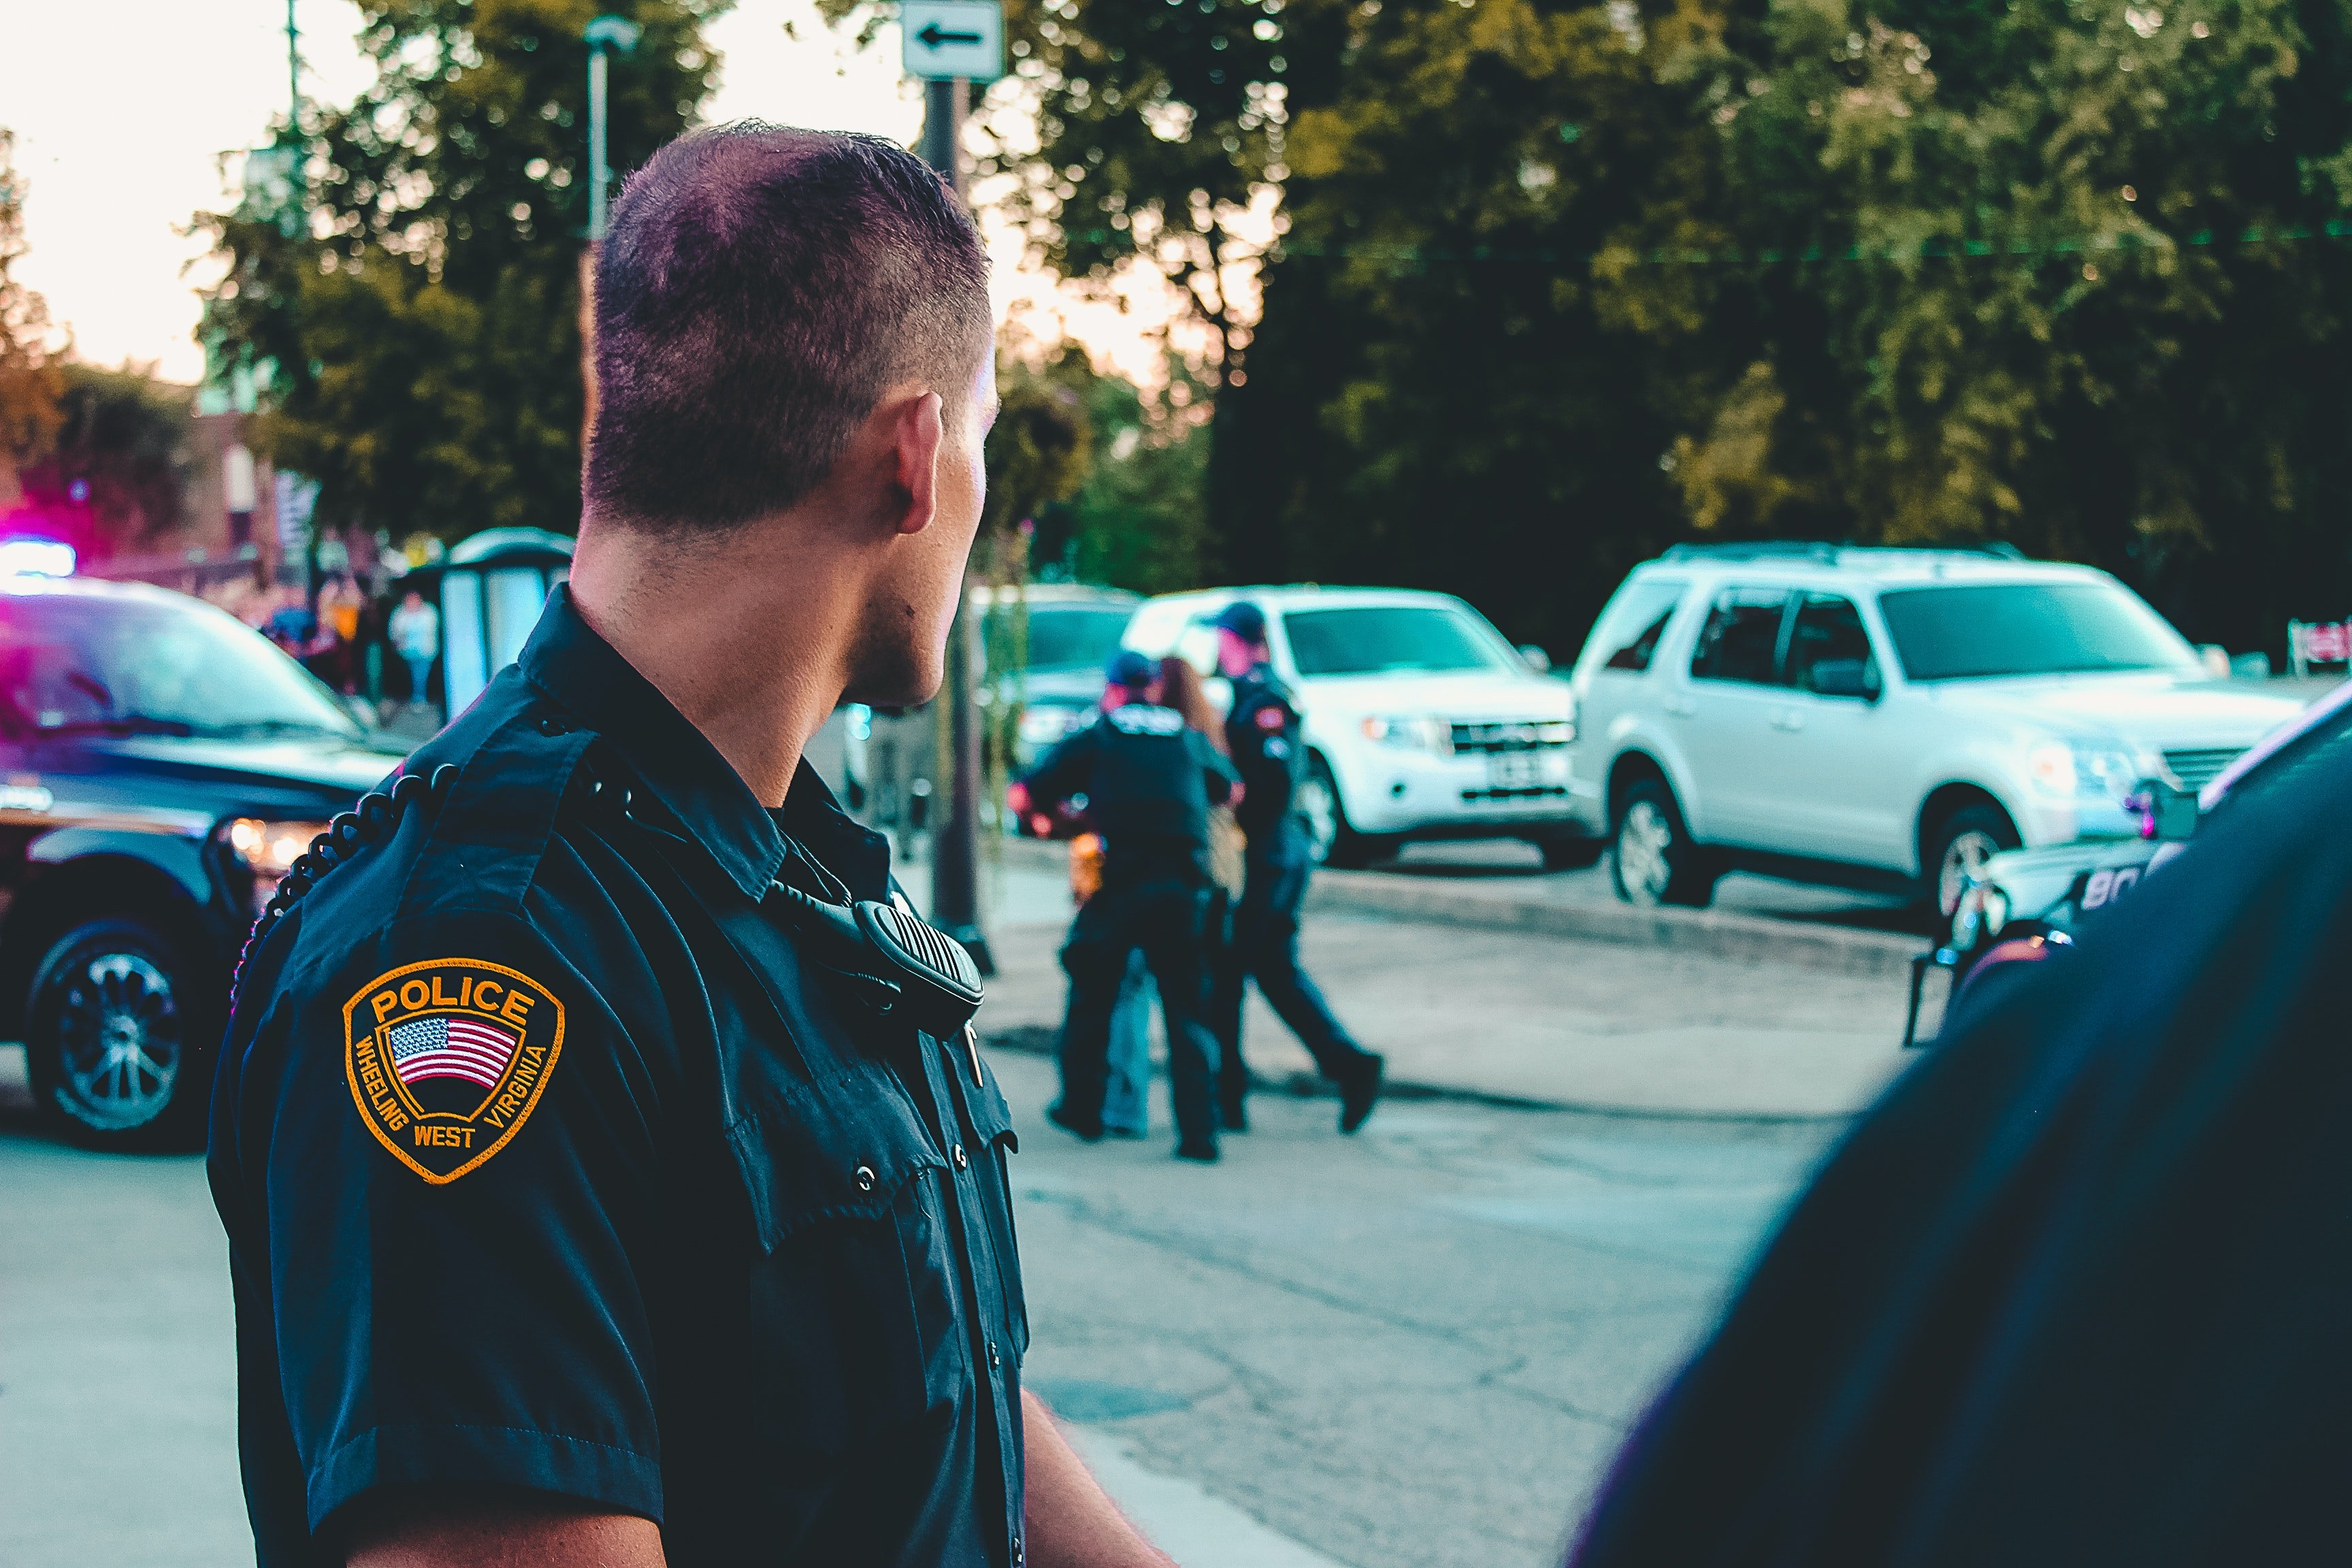 An officer looking over his shoulder. | Source: Pexels/ Rosemary Ketchum